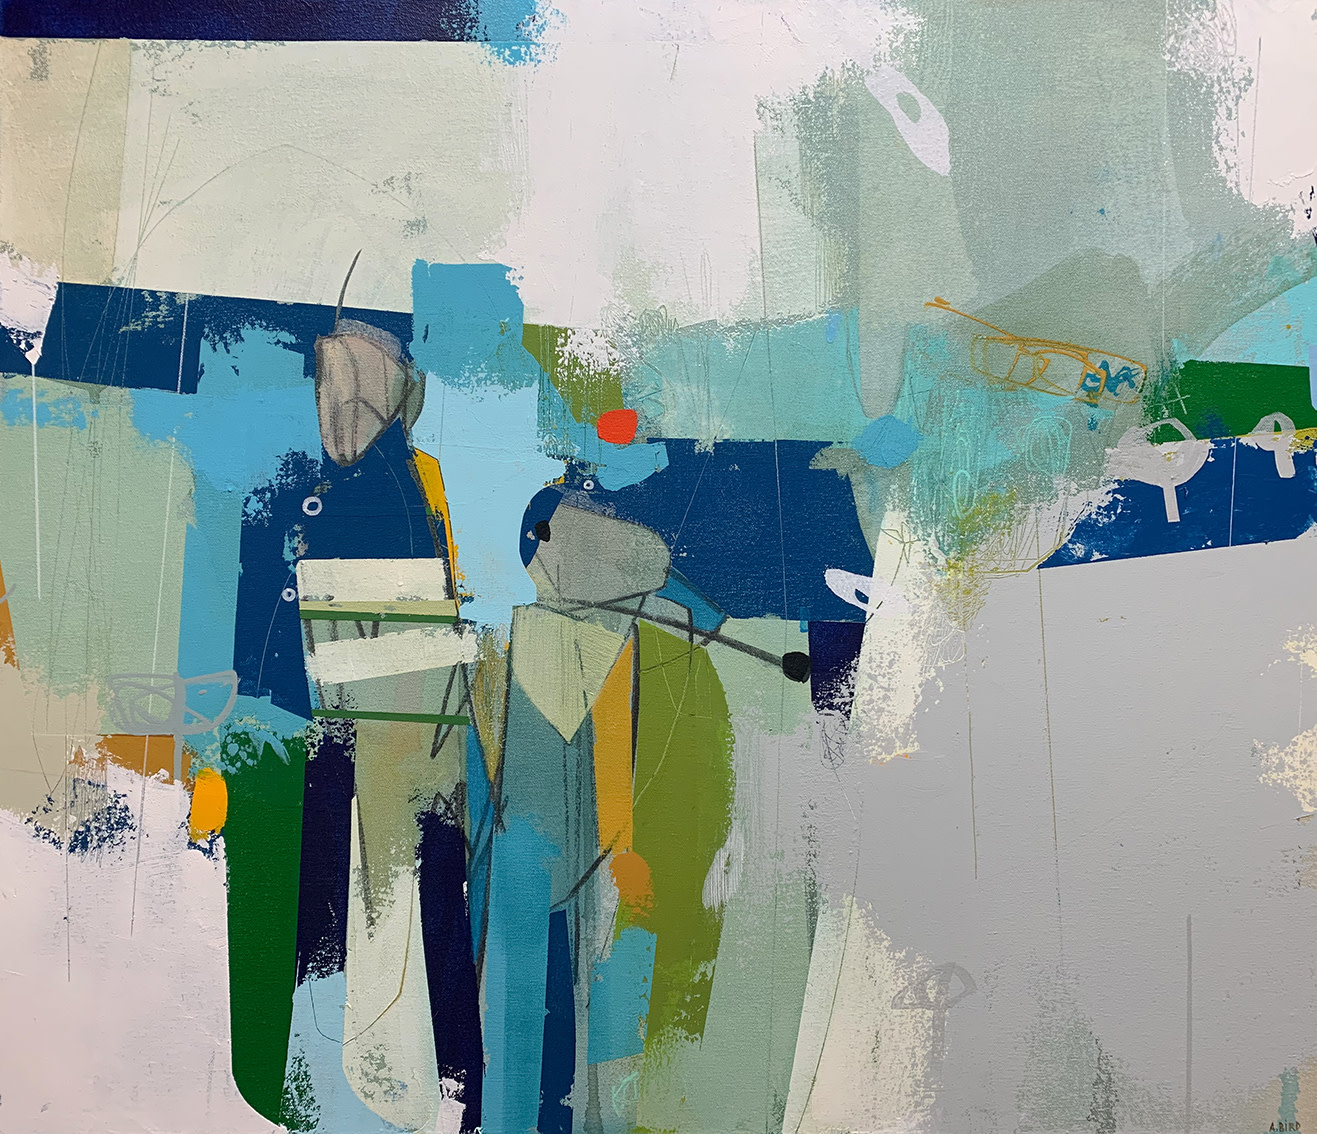 """<span class=""""link fancybox-details-link""""><a href=""""/artists/77-andrew-bird/works/7089-andrew-bird-longstanding-2020/"""">View Detail Page</a></span><div class=""""artist""""><strong>Andrew Bird</strong></div> <div class=""""title""""><em>Longstanding</em>, 2020</div> <div class=""""signed_and_dated"""">signed and titled on reverse</div> <div class=""""medium"""">acrylic on canvas</div> <div class=""""dimensions"""">h 60 cm x w 70 cm</div><div class=""""price"""">£1,850.00</div><div class=""""copyright_line"""">Own Art: £185 x 10 Months, 0% APR</div>"""